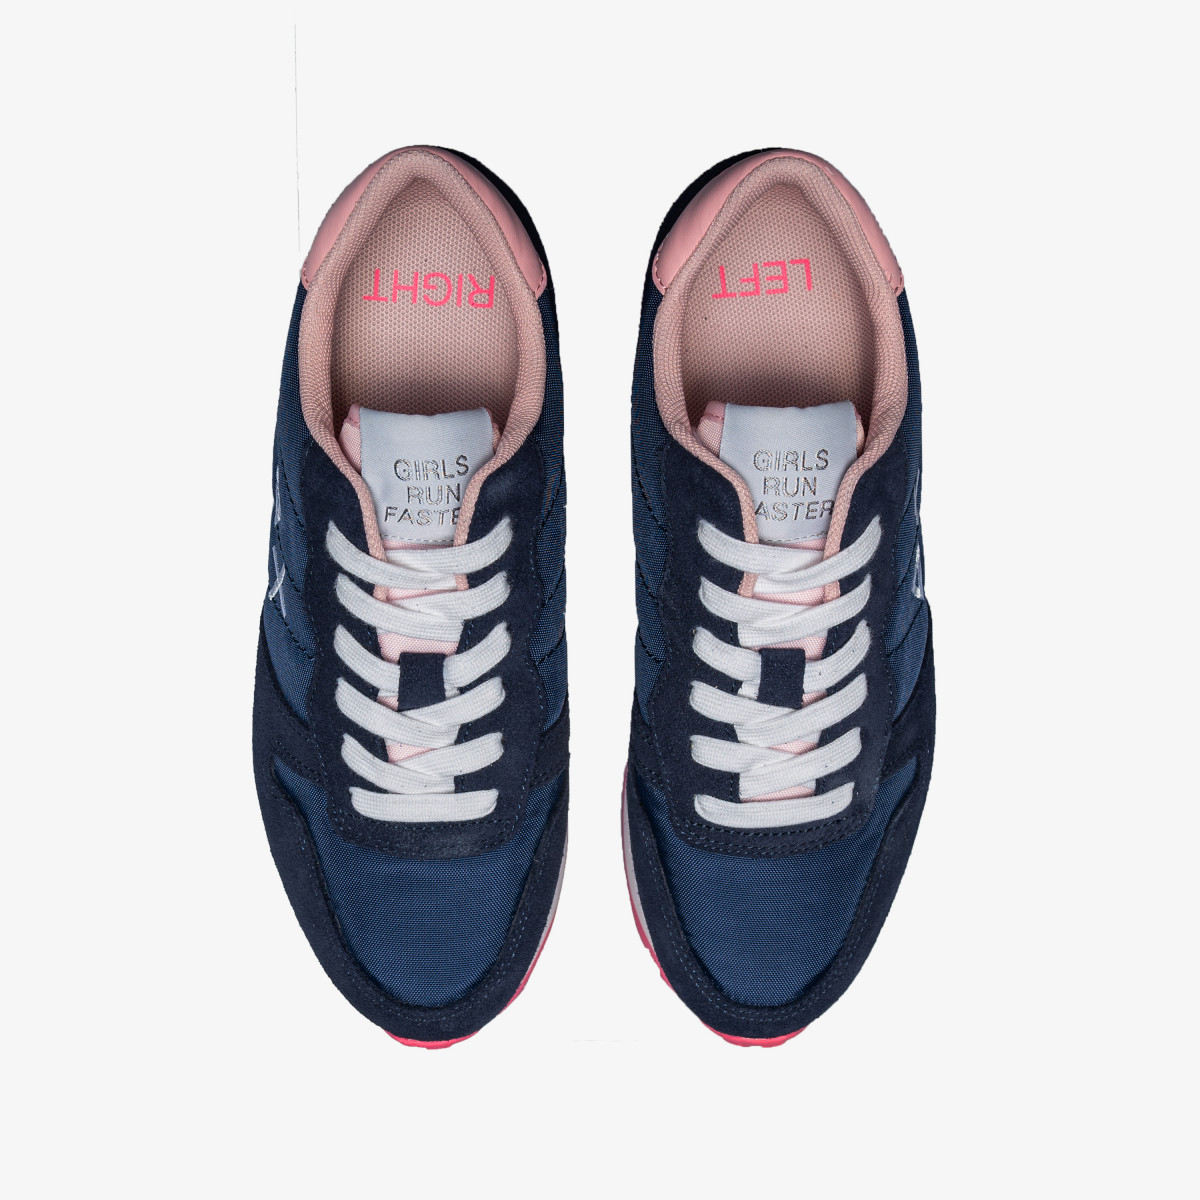 ALLY SOLID NYLON NAVY BLUE